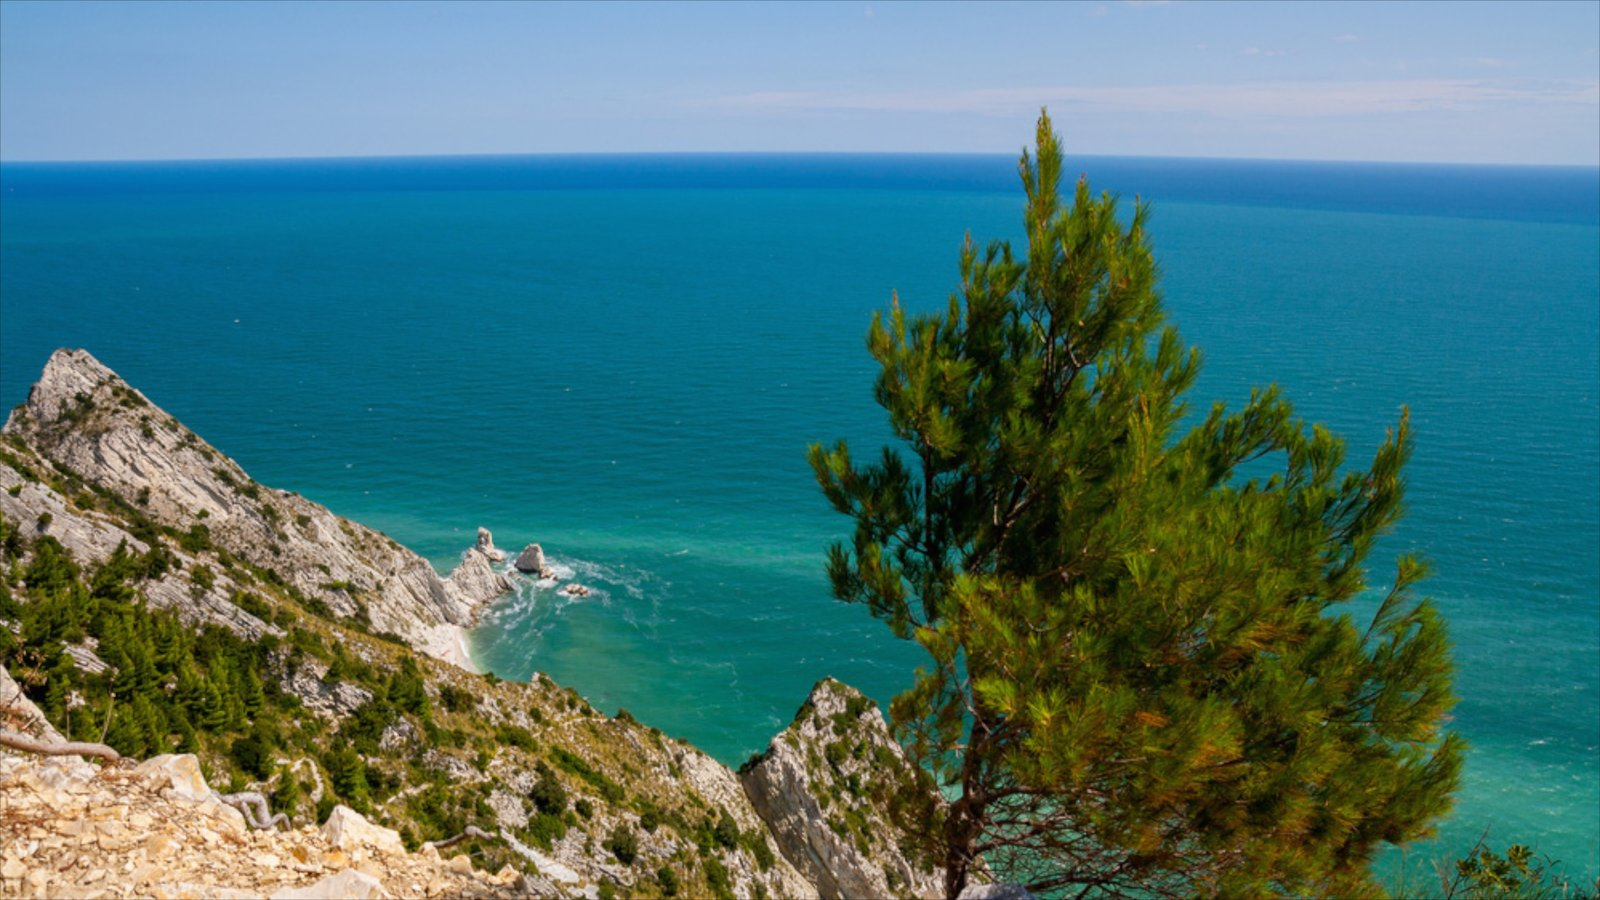 Sirolo which includes general coastal views and rugged coastline